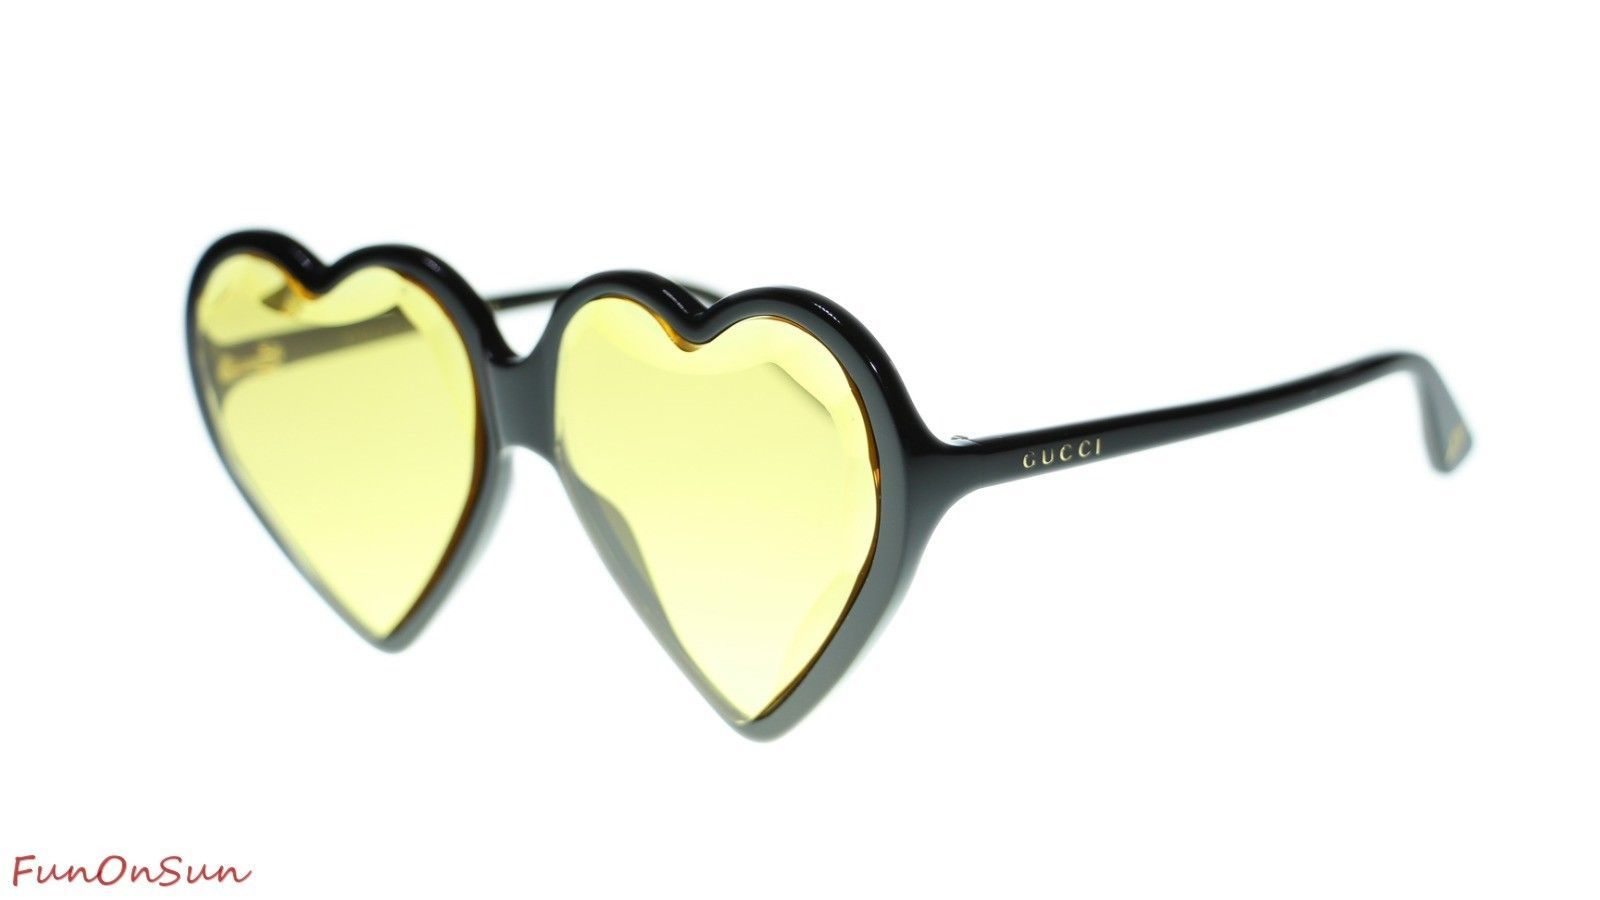 dfa6af302ef Gucci Women Heart Sunglasses GG0360S 002 and 31 similar items. 10